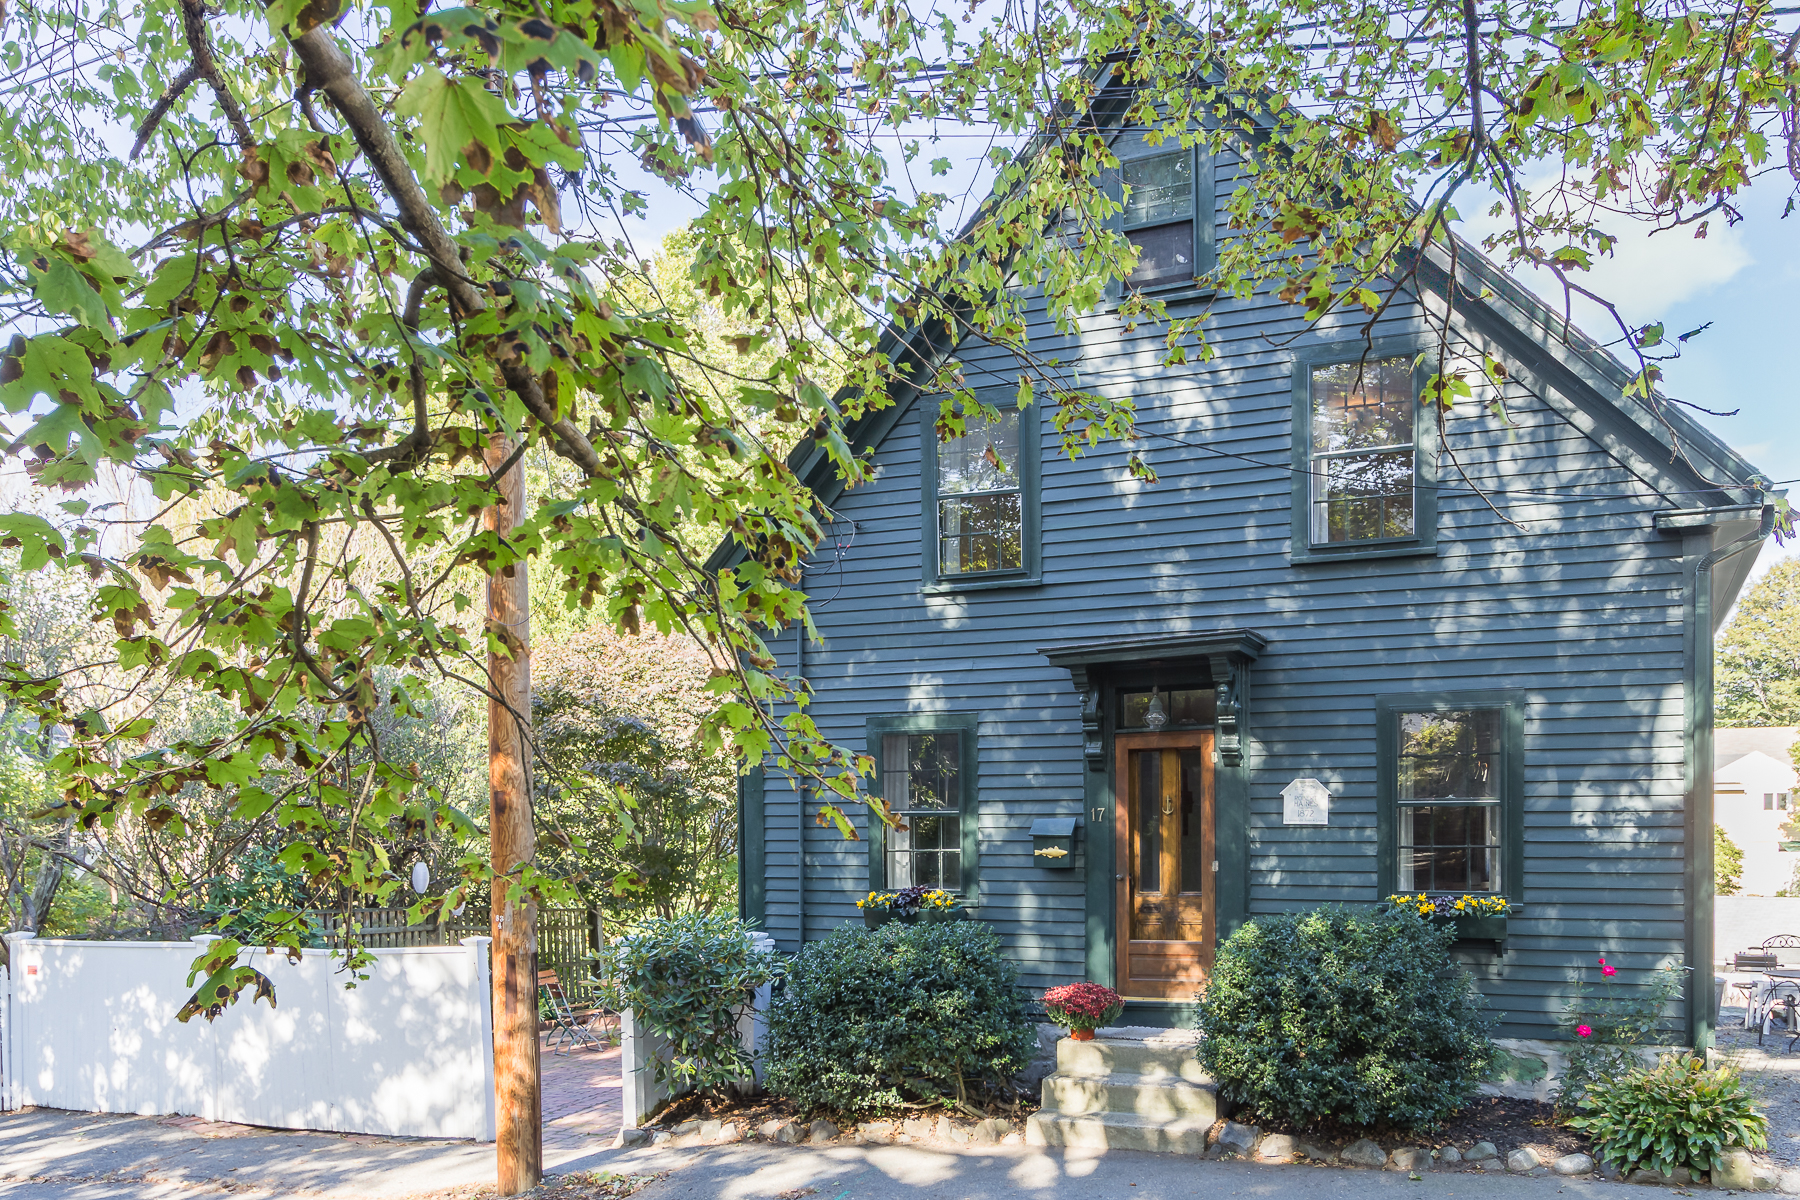 Single Family Home for Sale at Antique Colonial in the Heart of Marblehead 17 Elm Street Marblehead, Massachusetts 01945 United States